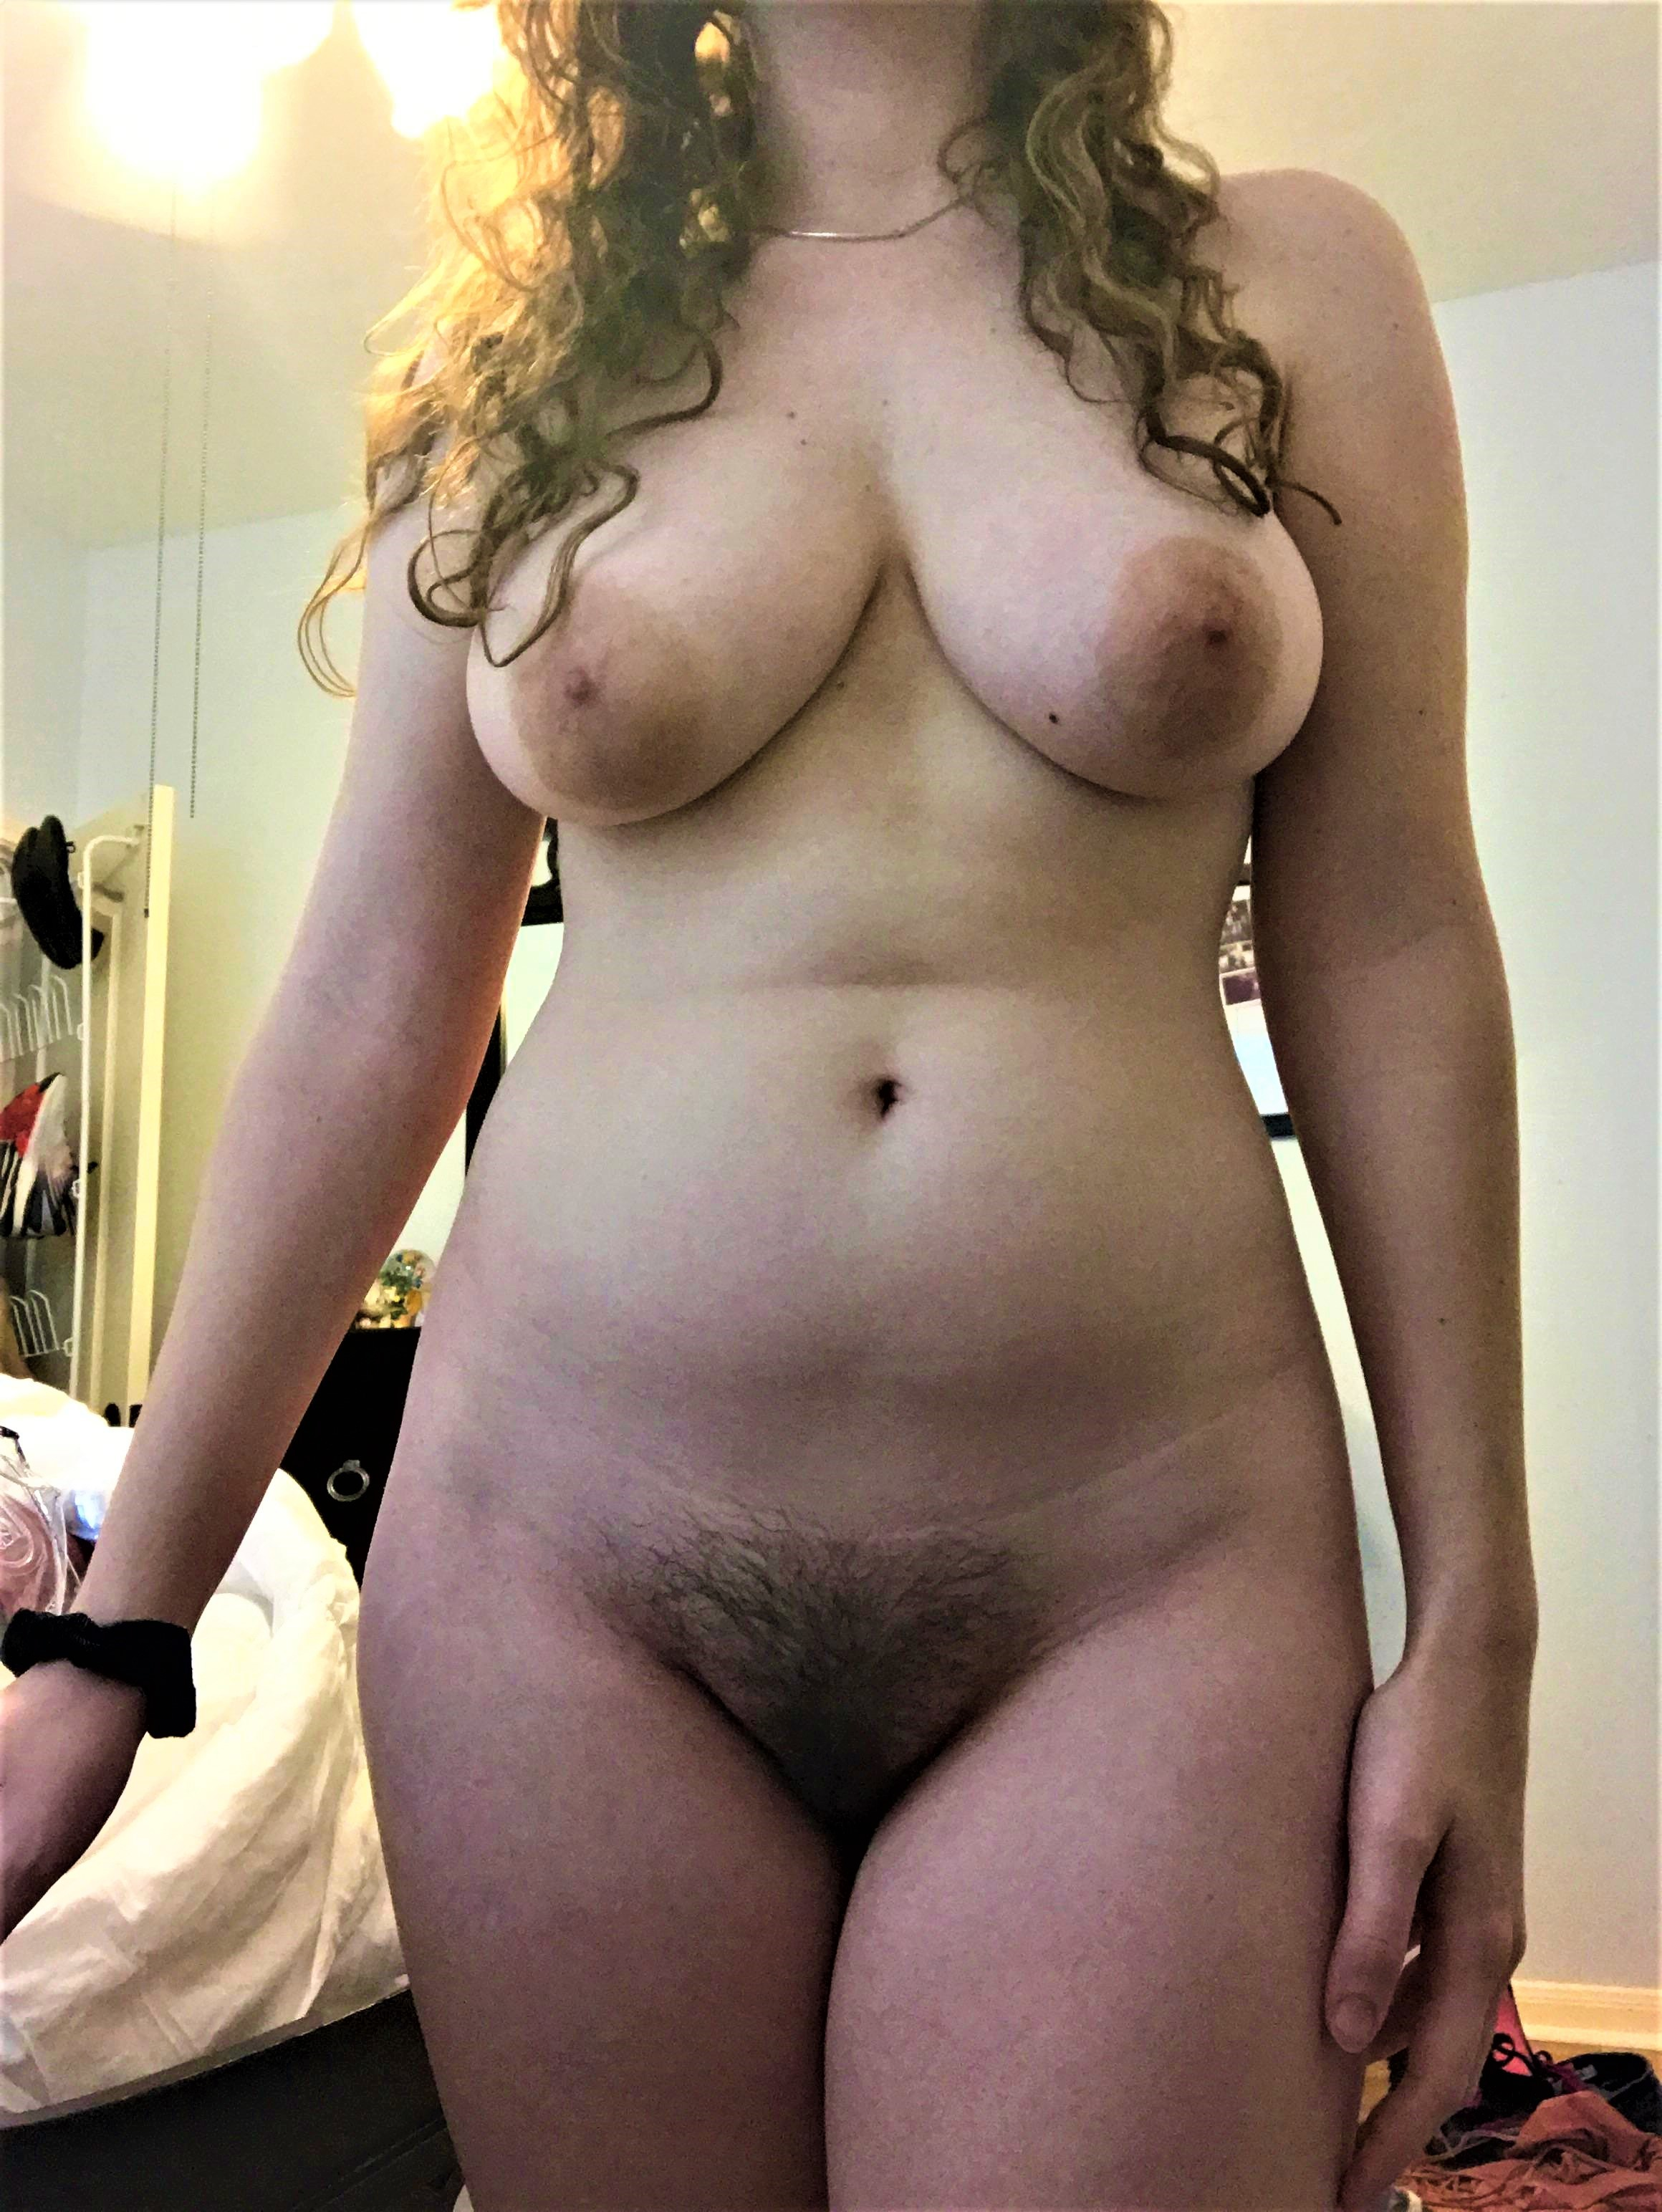 im getting fucked and eating my own pussy Amateur Candid NiceHips Bottomless HairyPussy Busty NiceBush